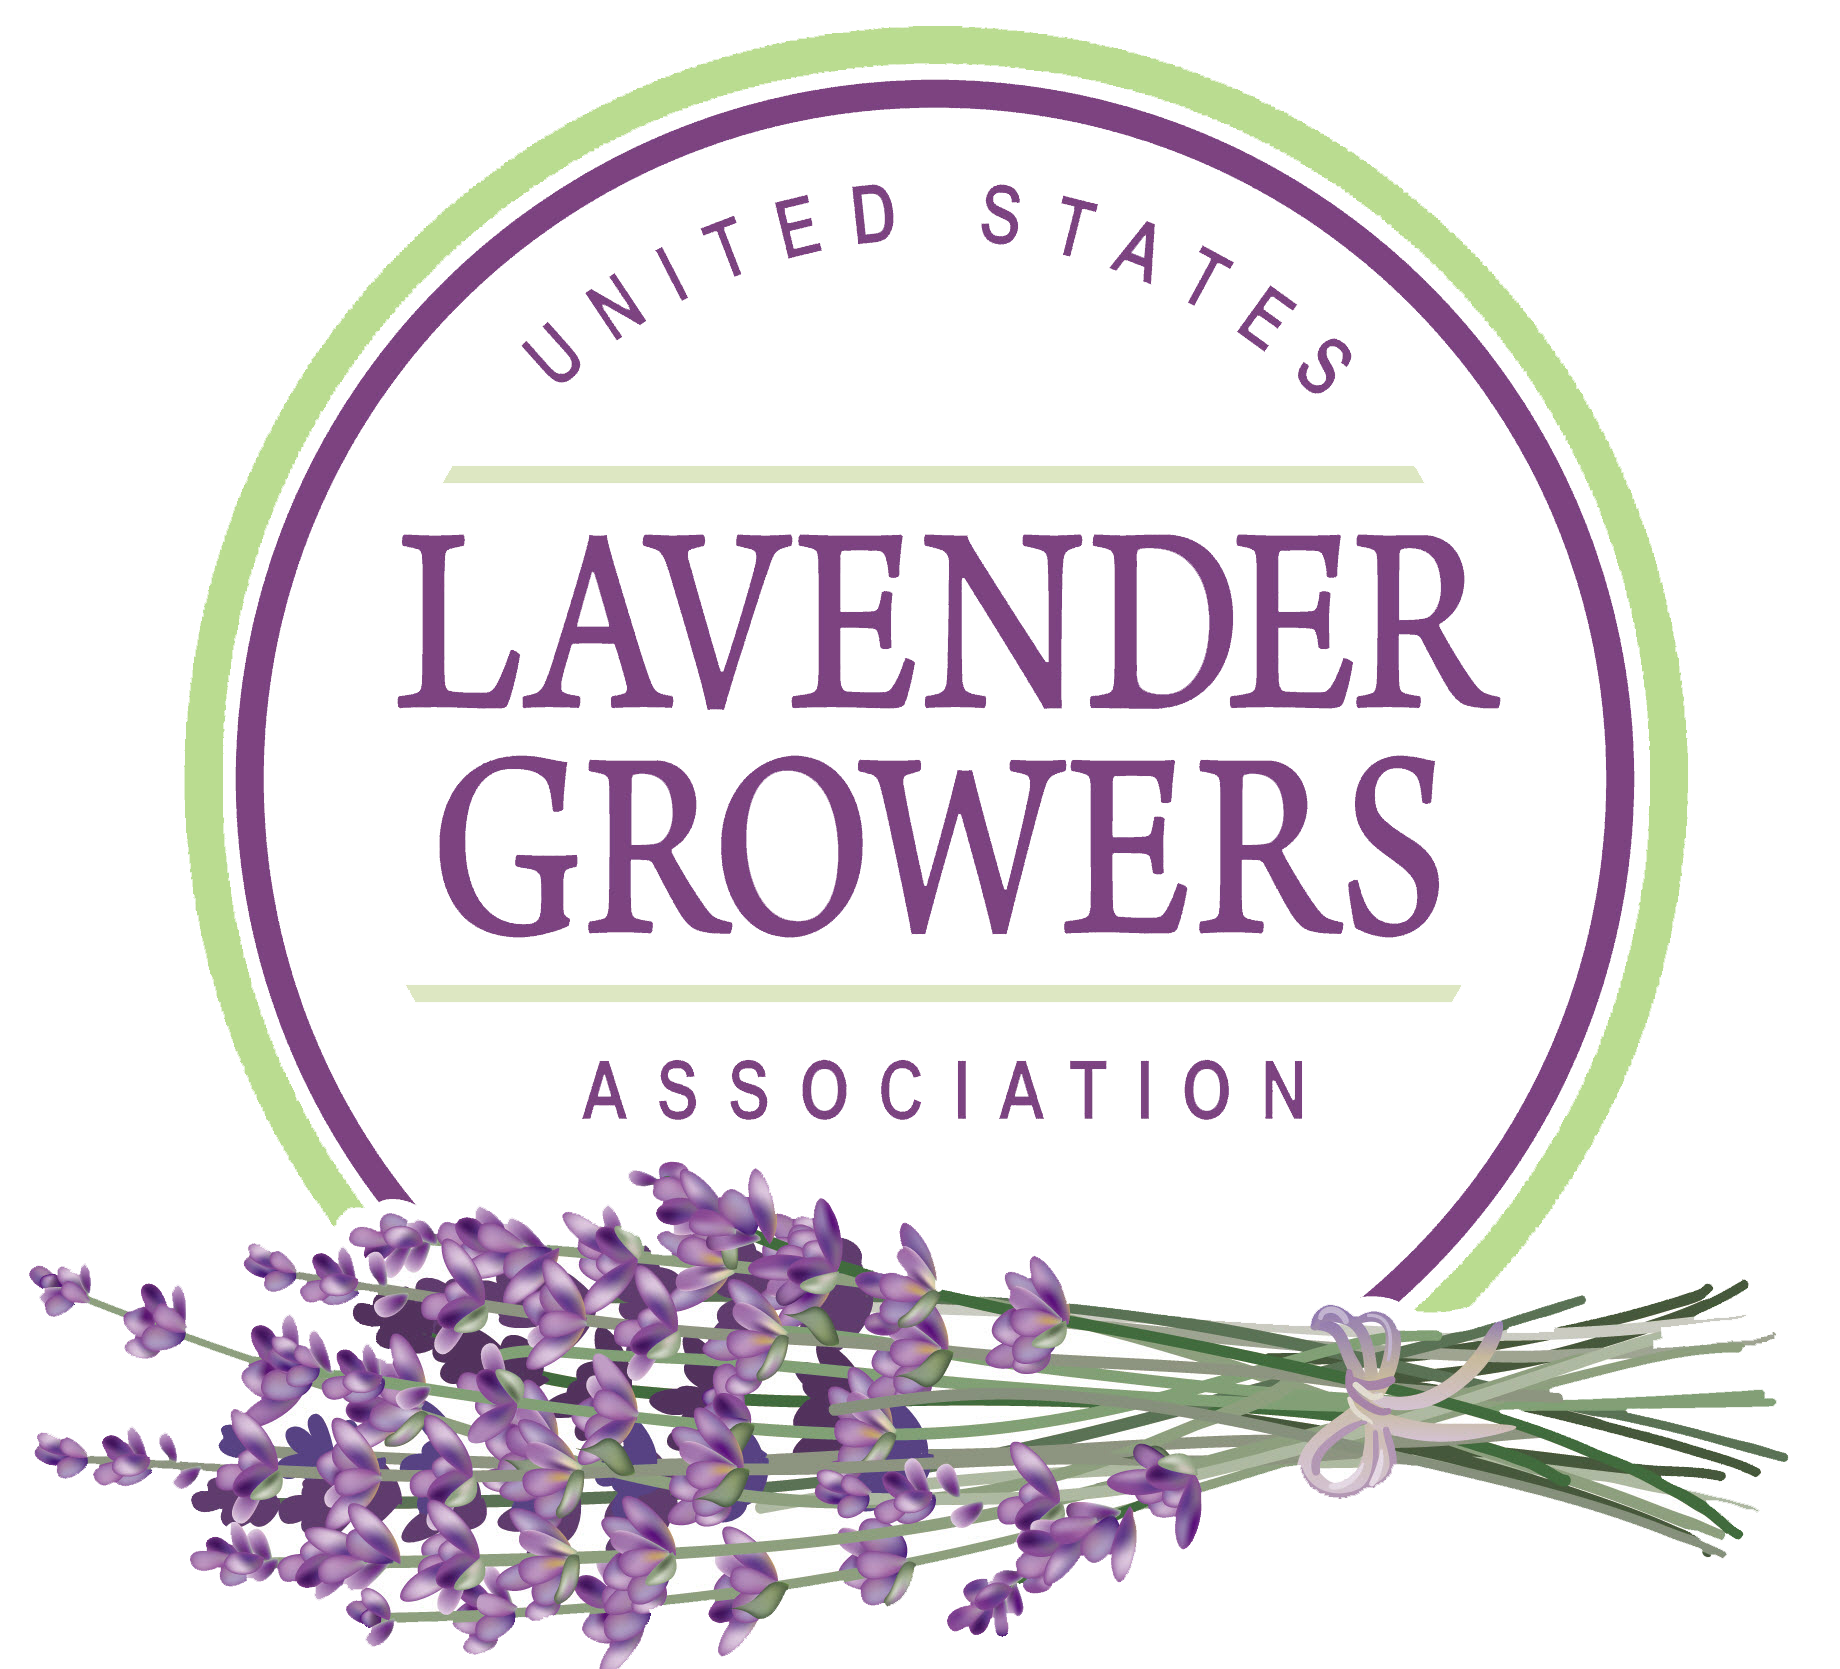 United States Lavender Growers Association logo